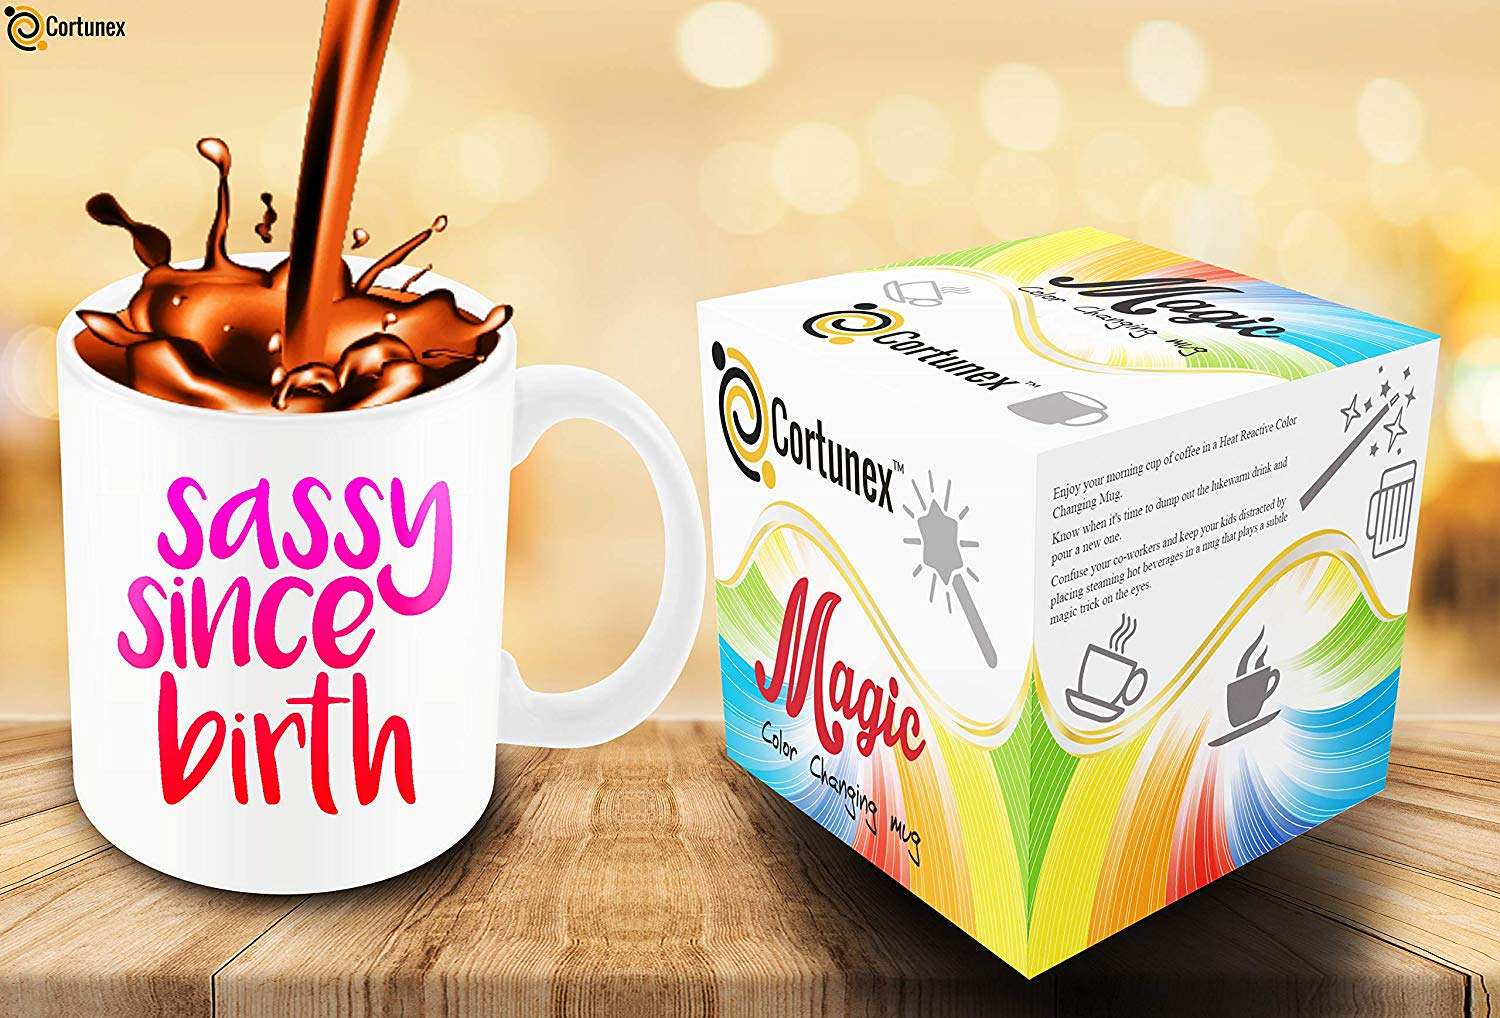 Heat Sensitive Color Changing Coffee Mug Funny Coffee Cup Sassy Since Birth Design Funny Gift Idea B079FXVMKT 6